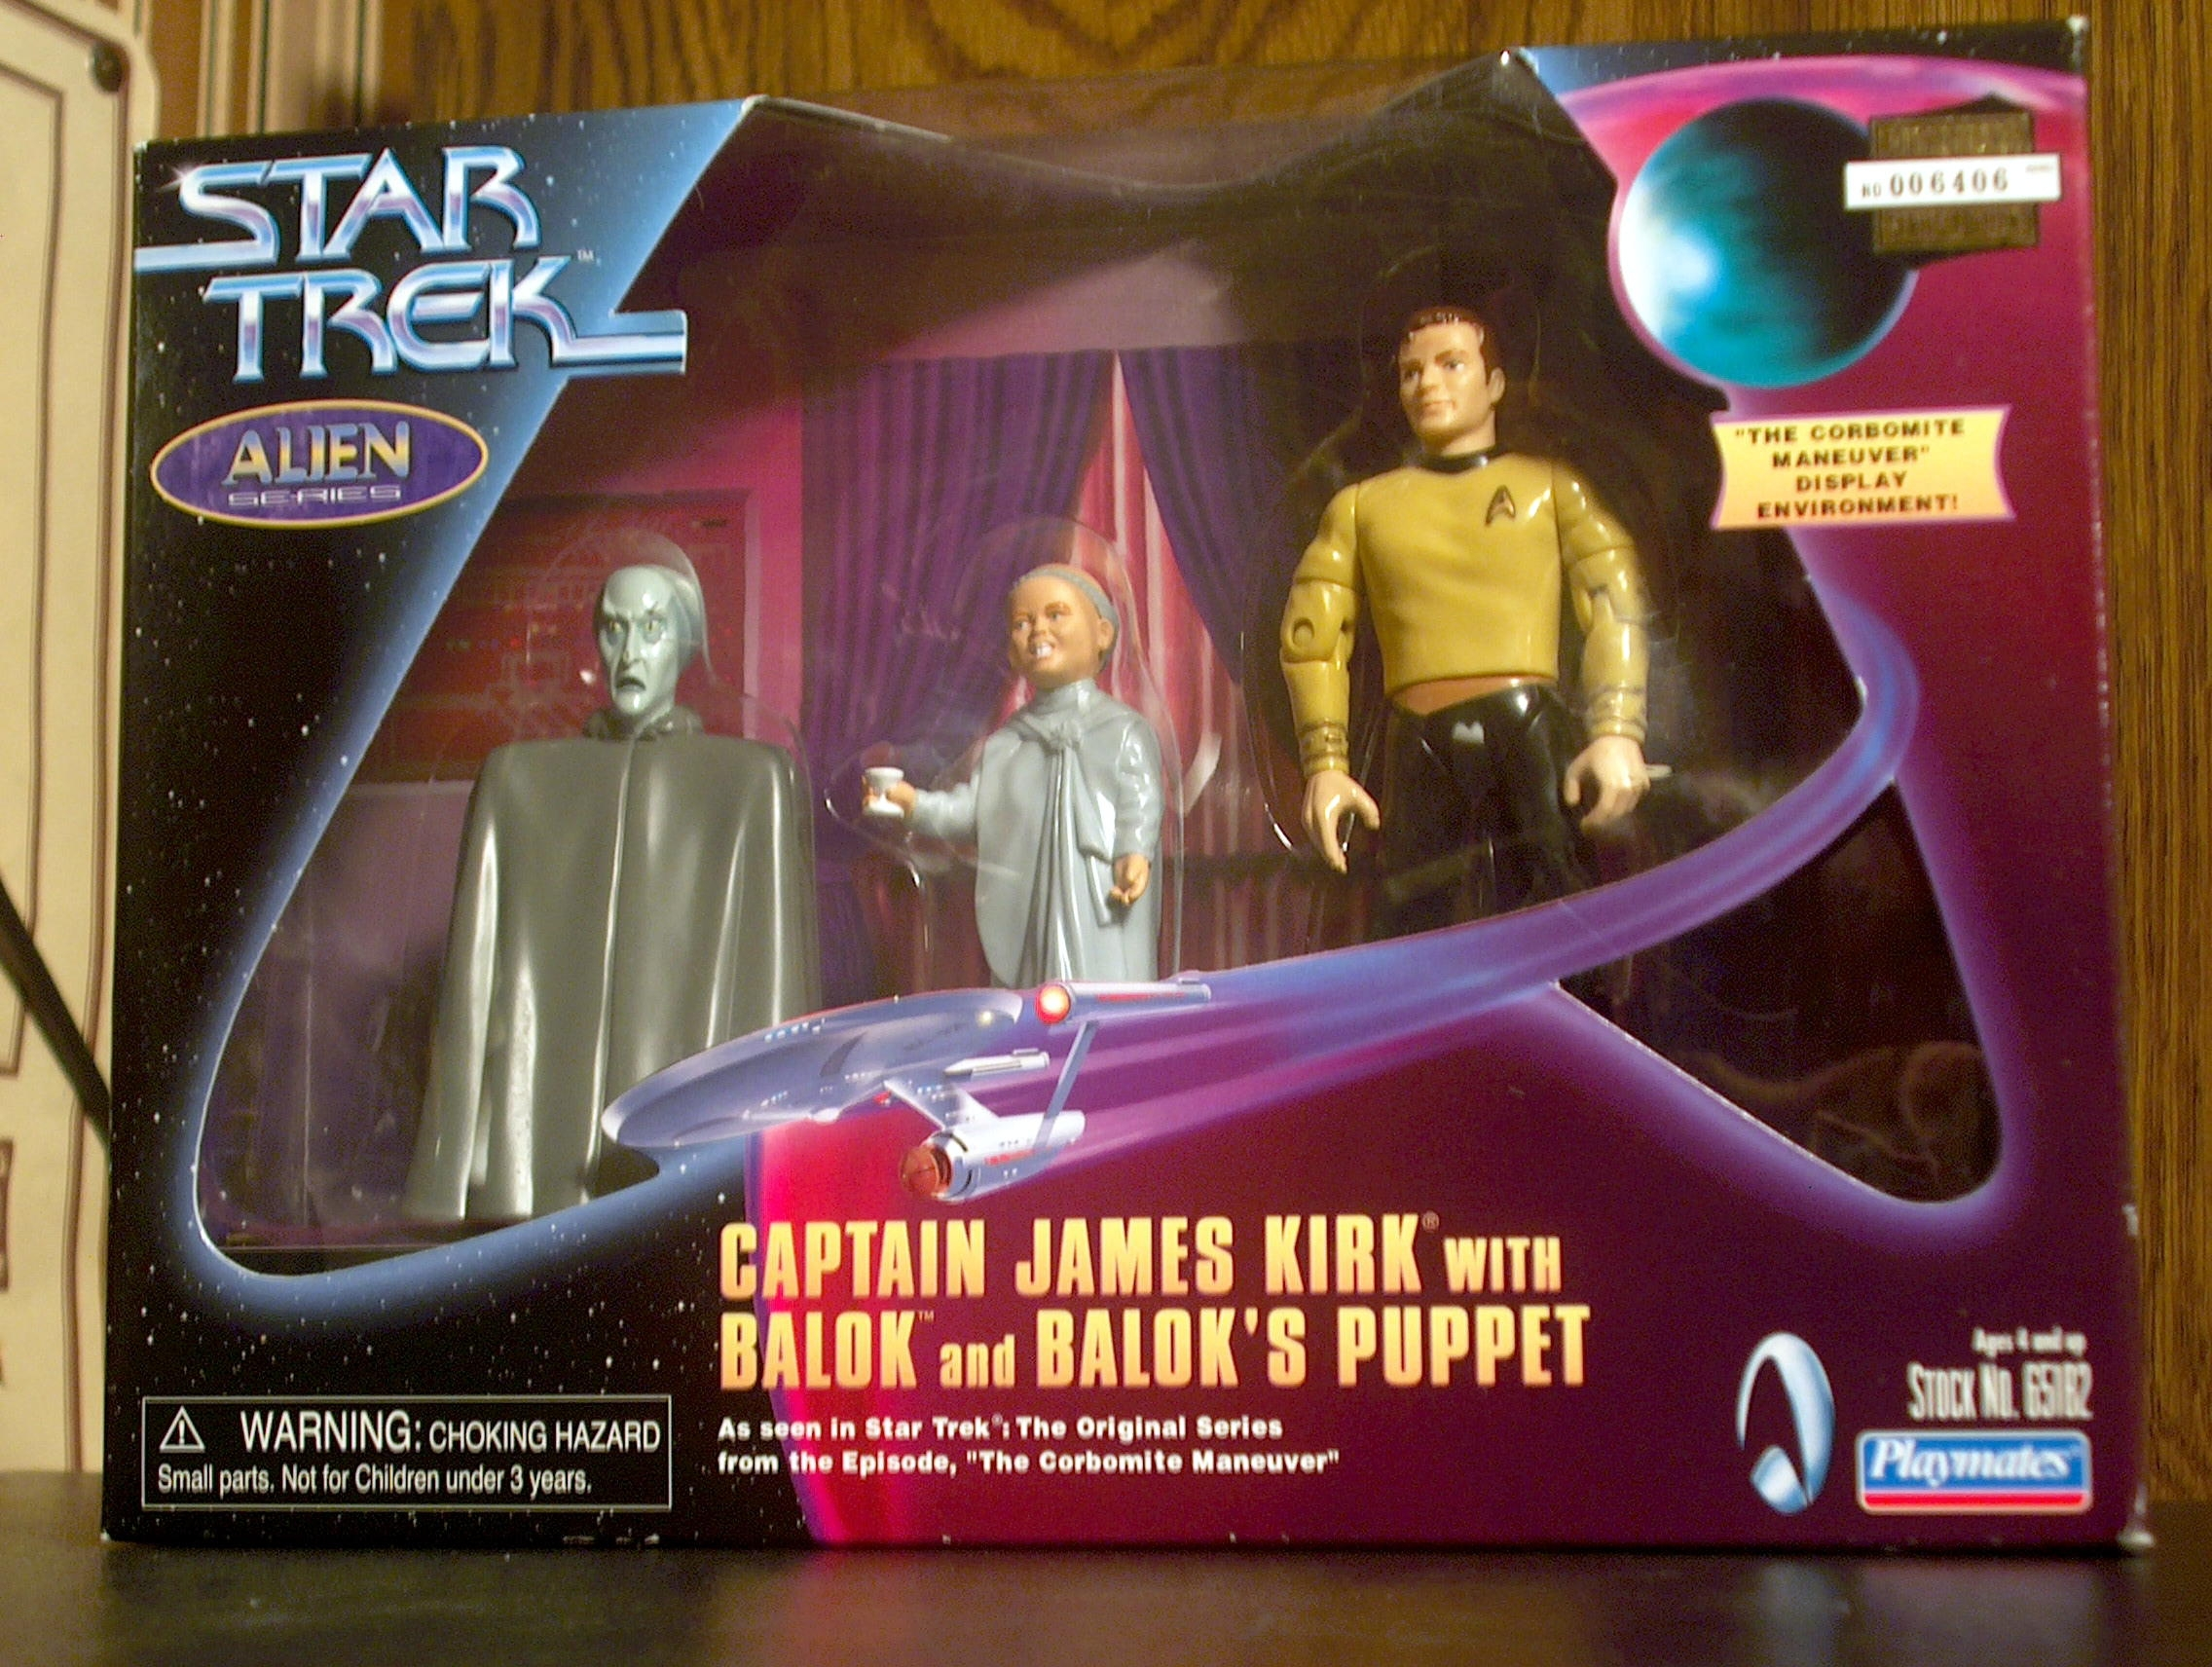 Captain James Kirk with Balok and Balok's Puppet